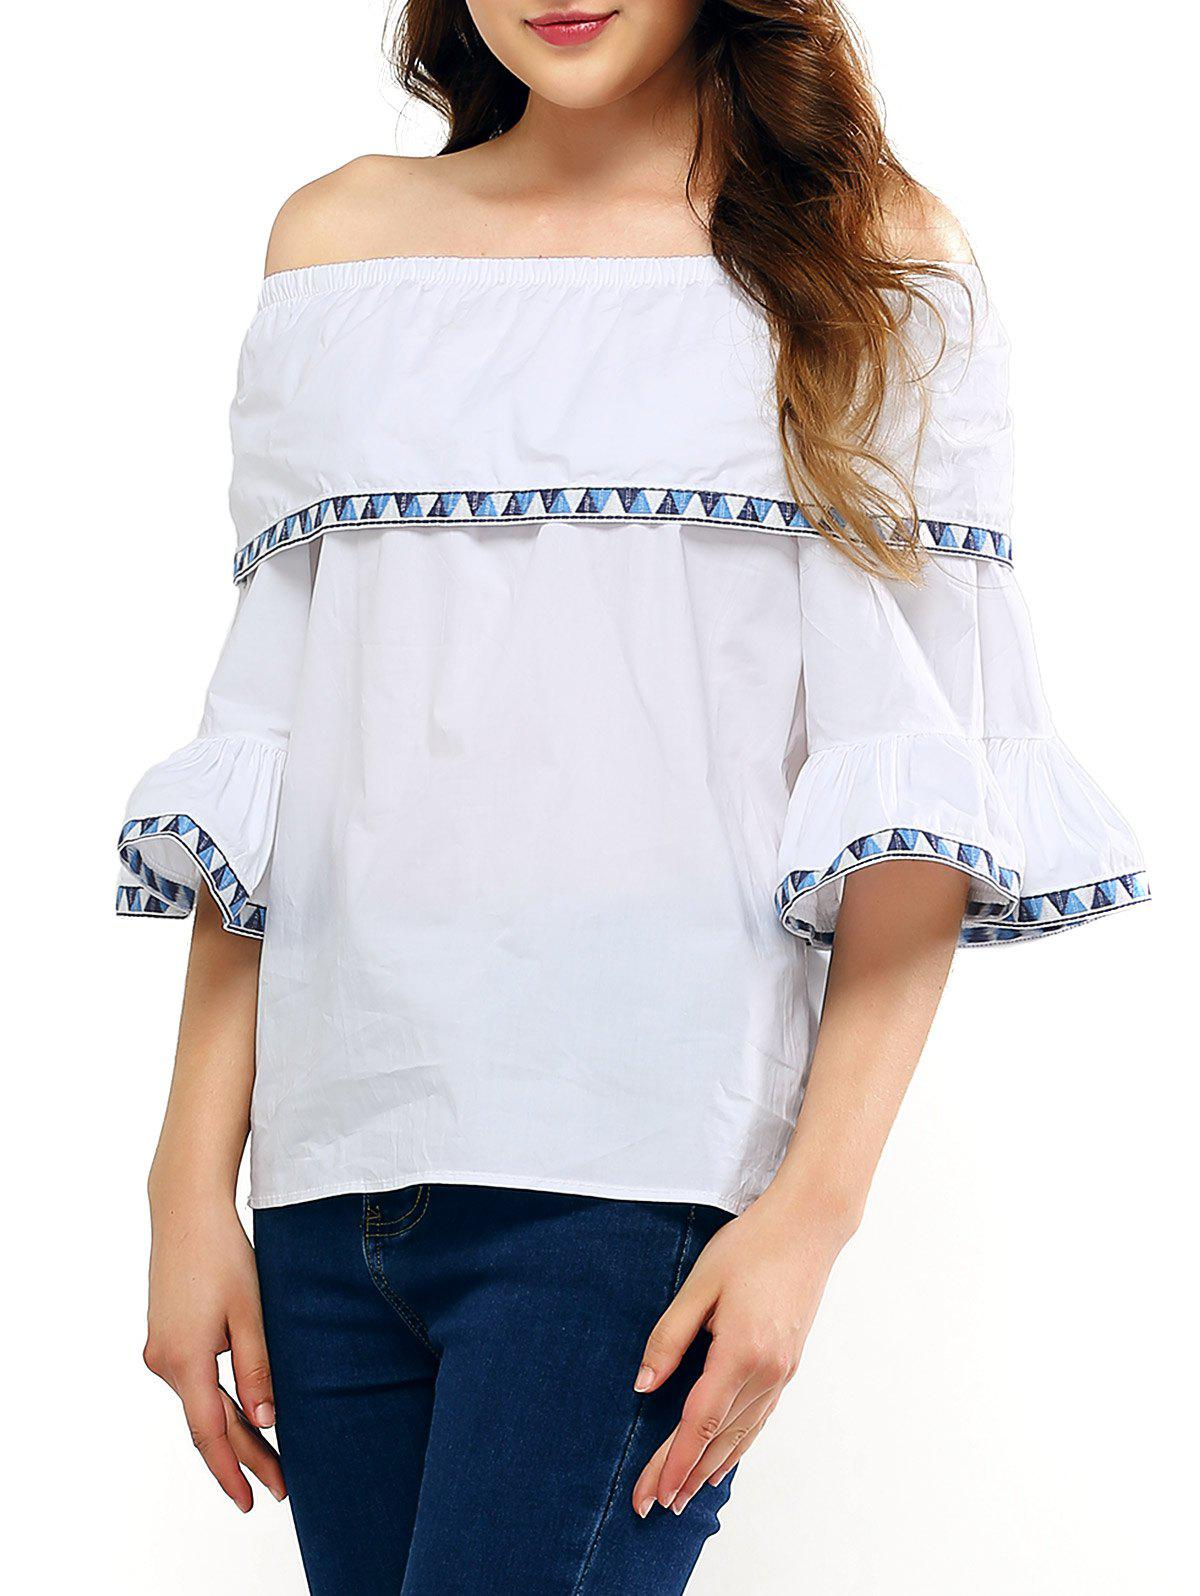 Flare Sleeve Overlay Embroidery Blouse